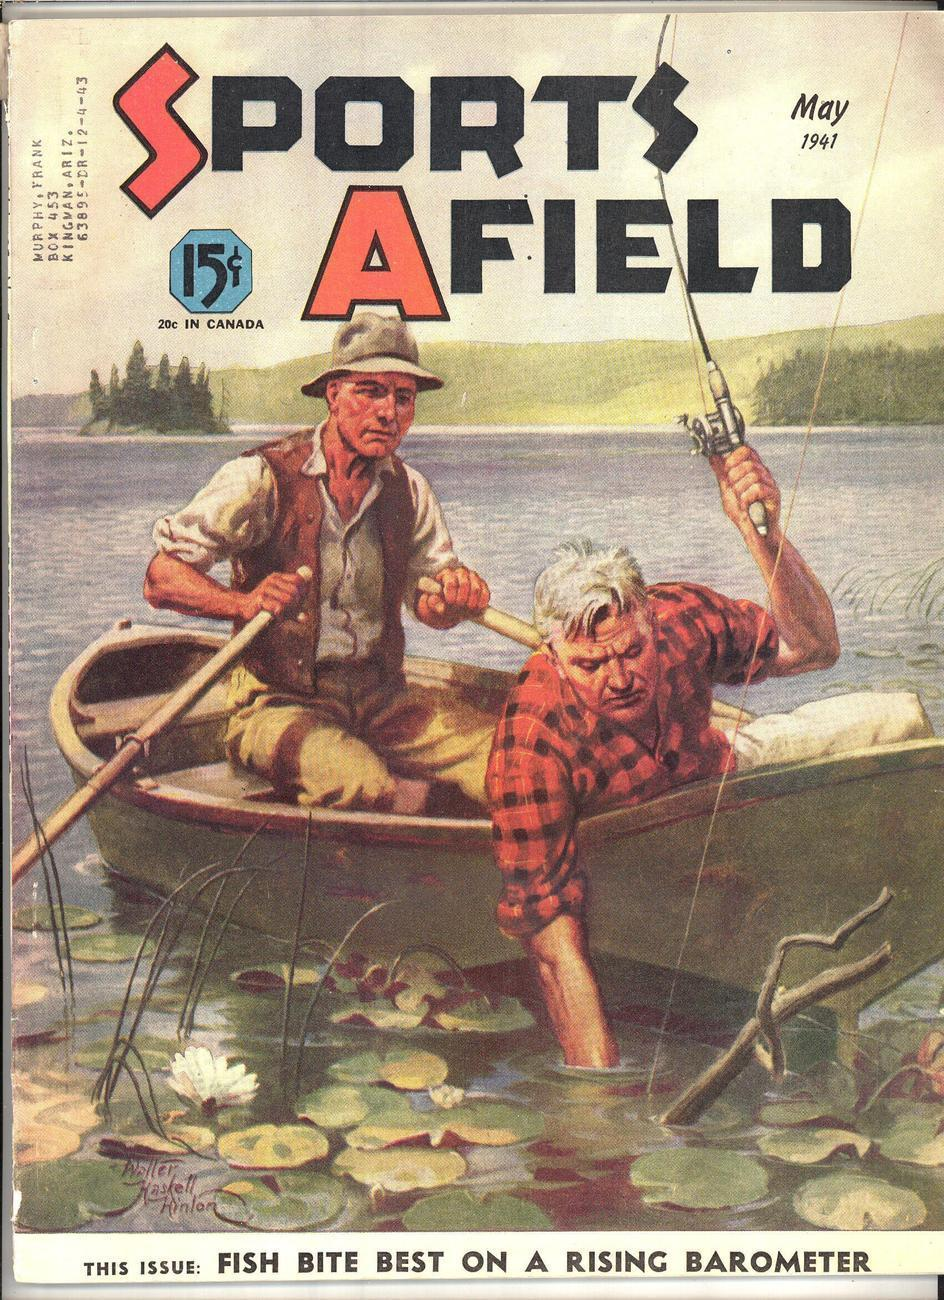 Sports afield magazine may 1941 hinton artist cover for Sa fishing promo code free shipping